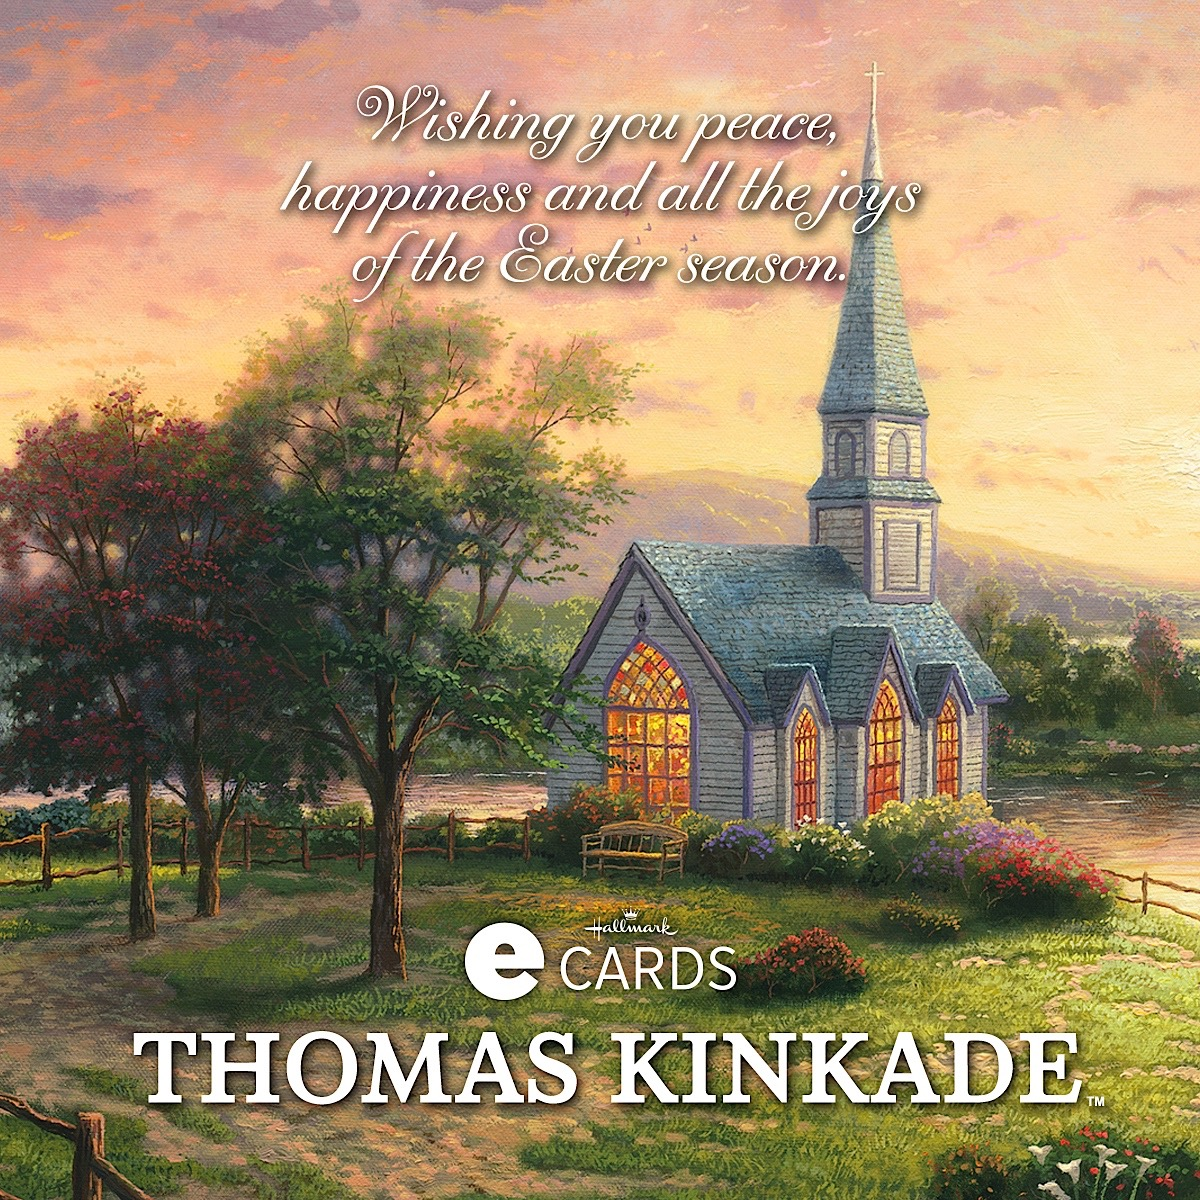 Thomas kinkade hallmark easter ecard the thomas kinkade company hallmark thomas kinkade easter ecards negle Images